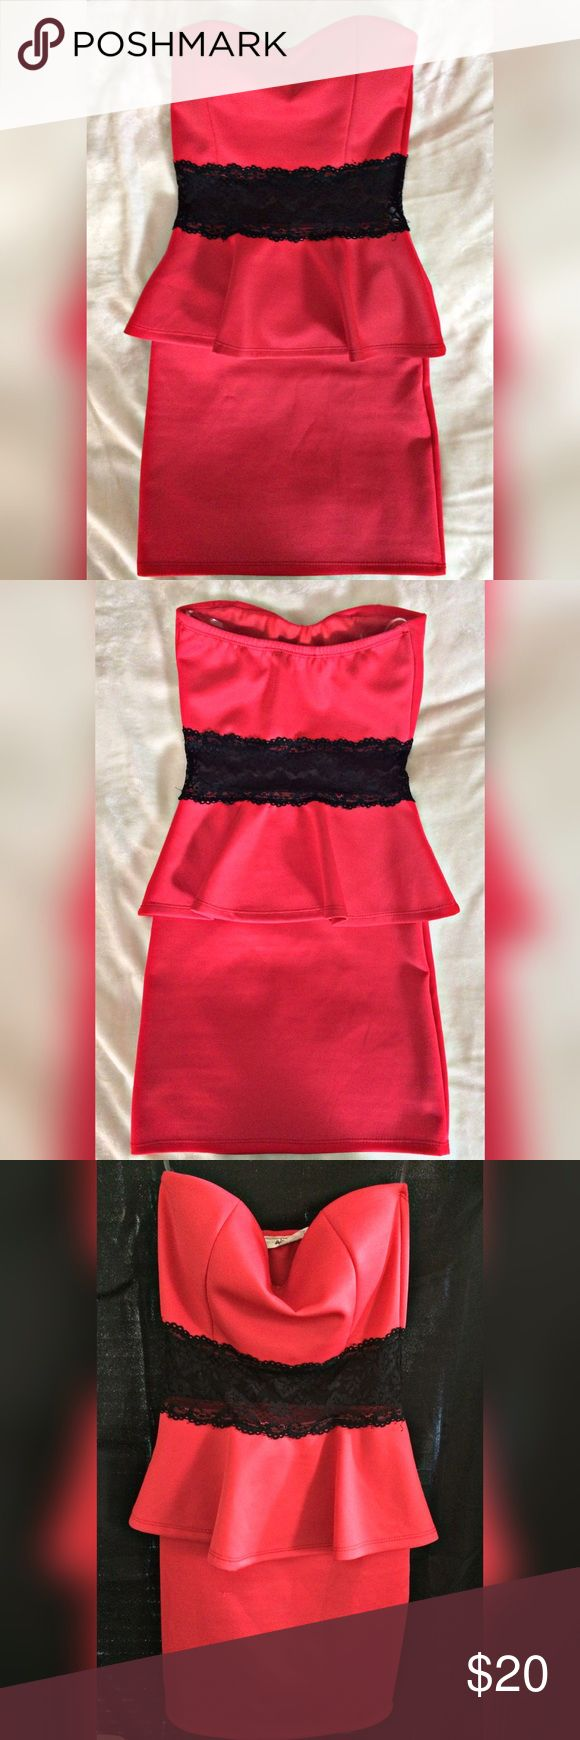 Red w/Lace Bodycon Dress 💫B2G1 FREE or BOGO Beauty Gift Free (see closet for details💫  Wild Daisy bodycon dress with lace waist! Super cute and flattering. Worn to a birthday party and a Christmas party. Showing light wear, as shown in picture. Size S and true to size. ▫️Reasonable offers welcomed▫️ Wild Daisy Dresses Mini